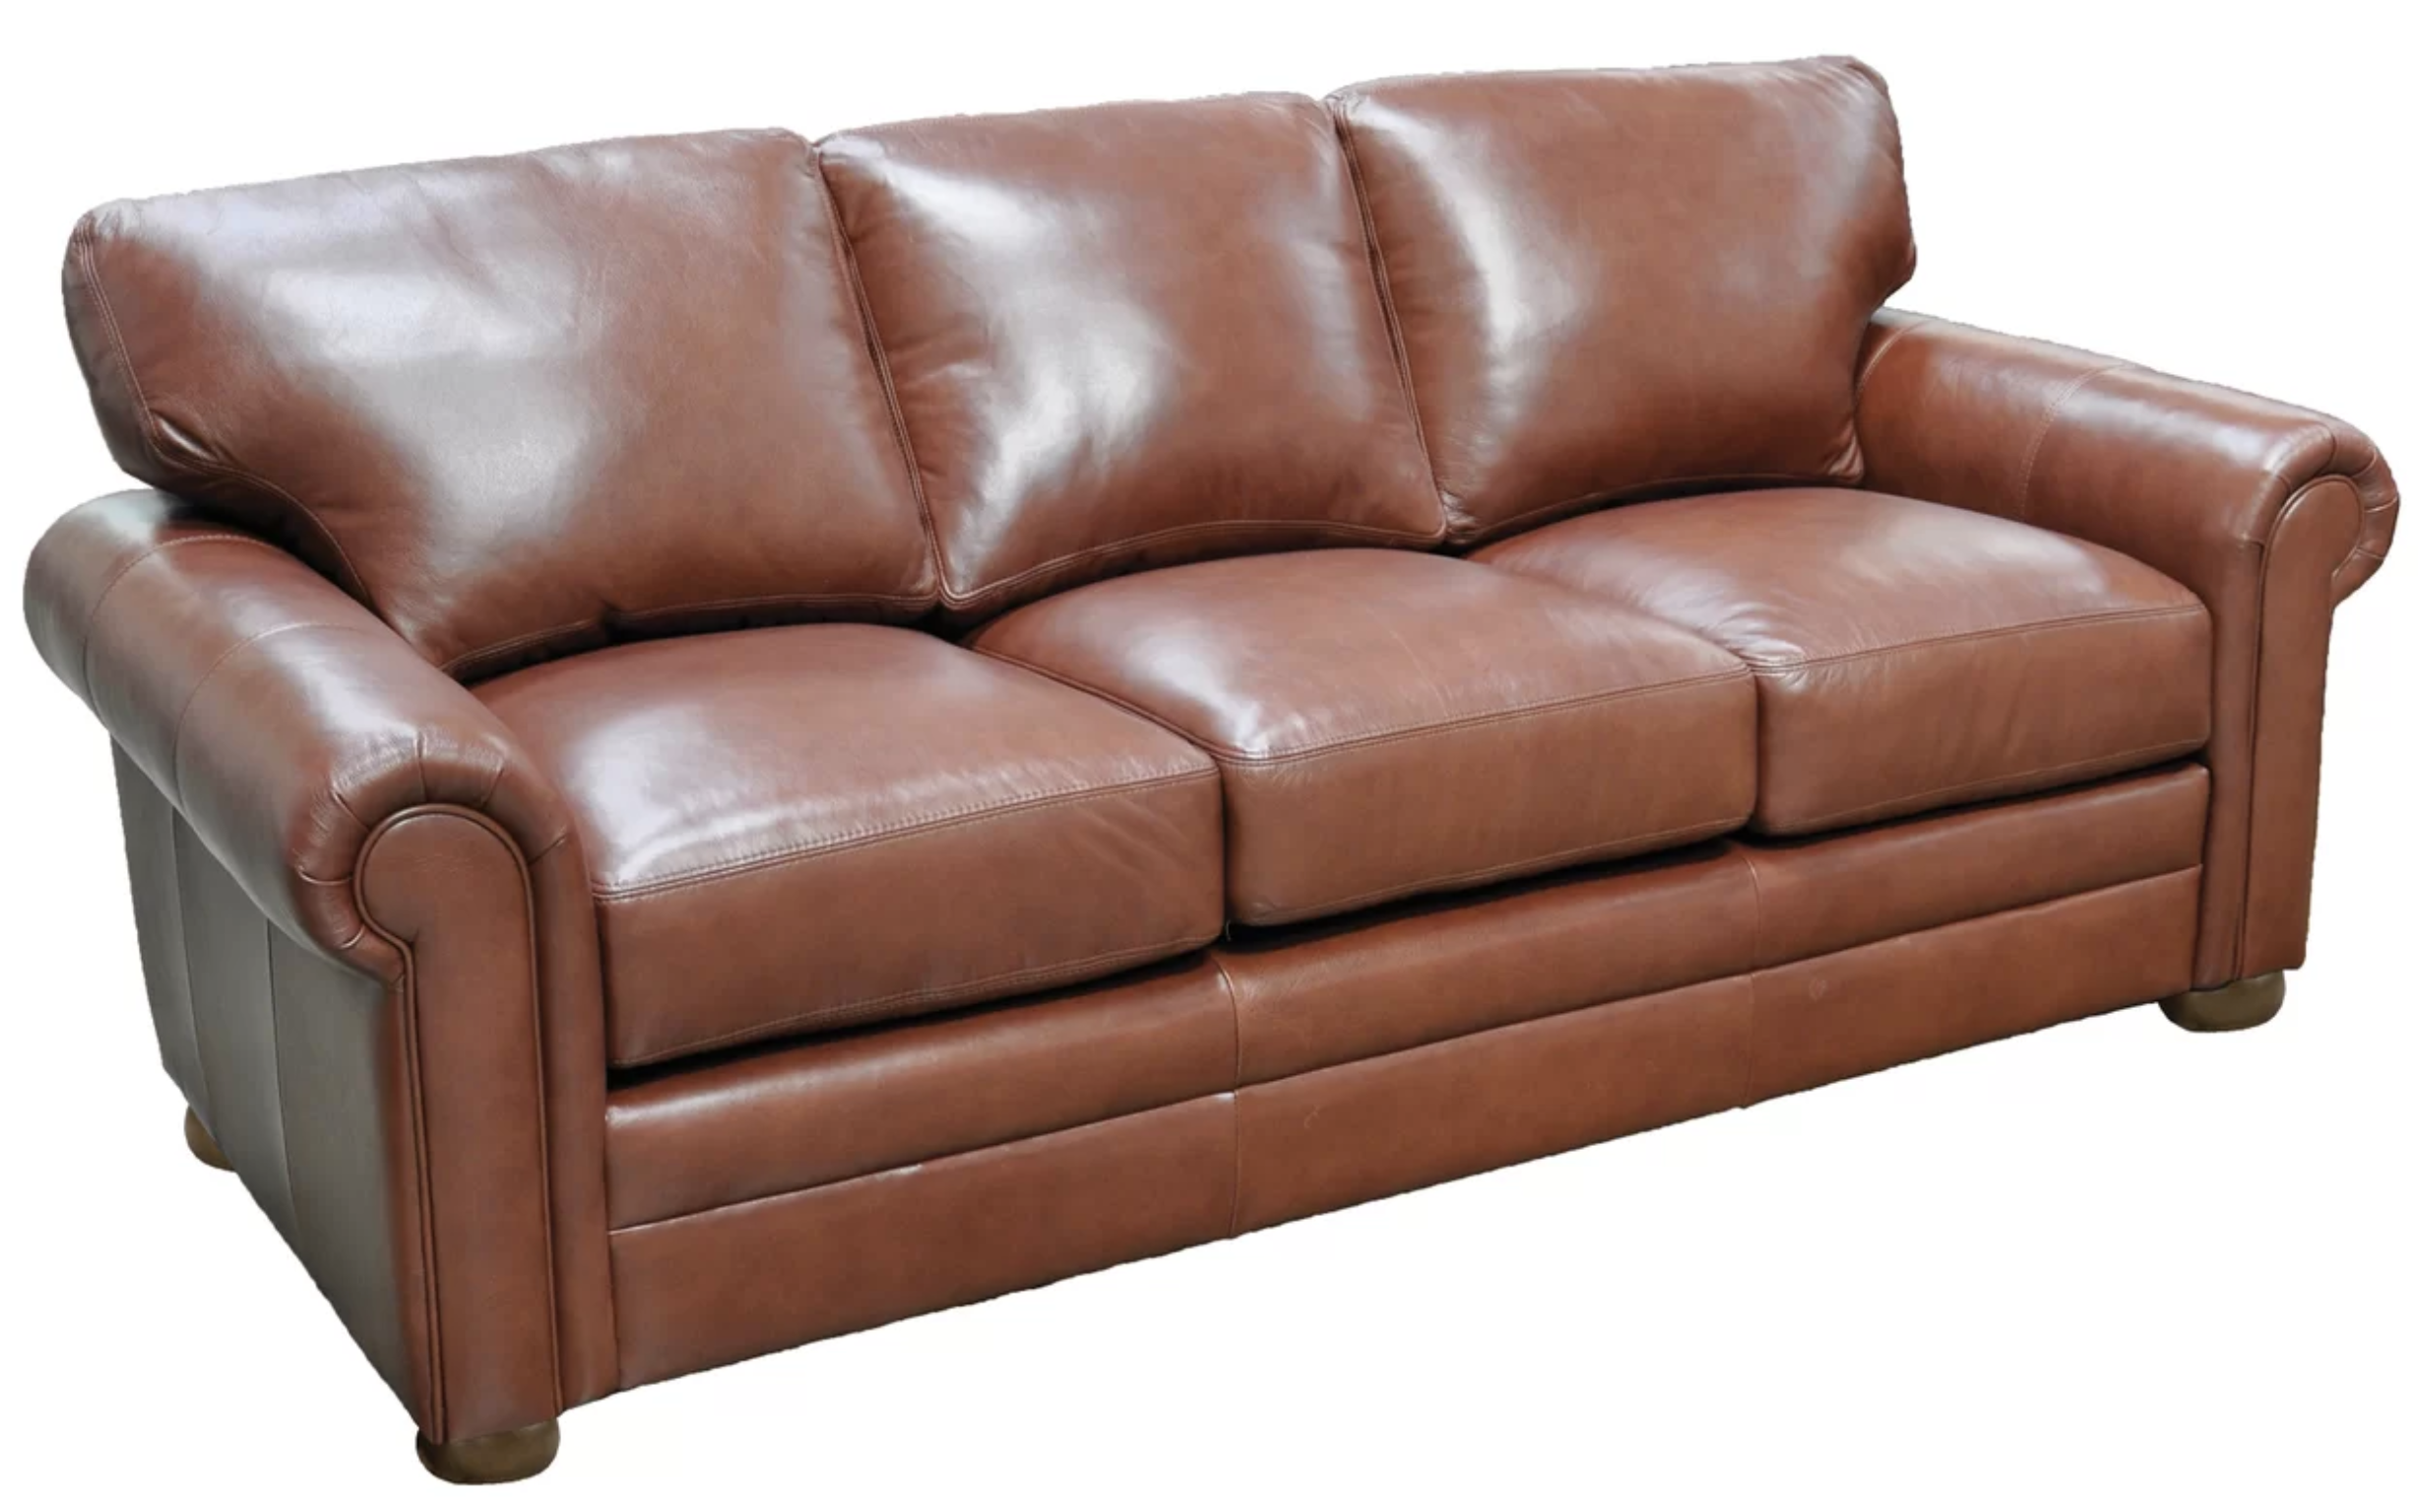 brown-sleeper-sofa-the-big-bang